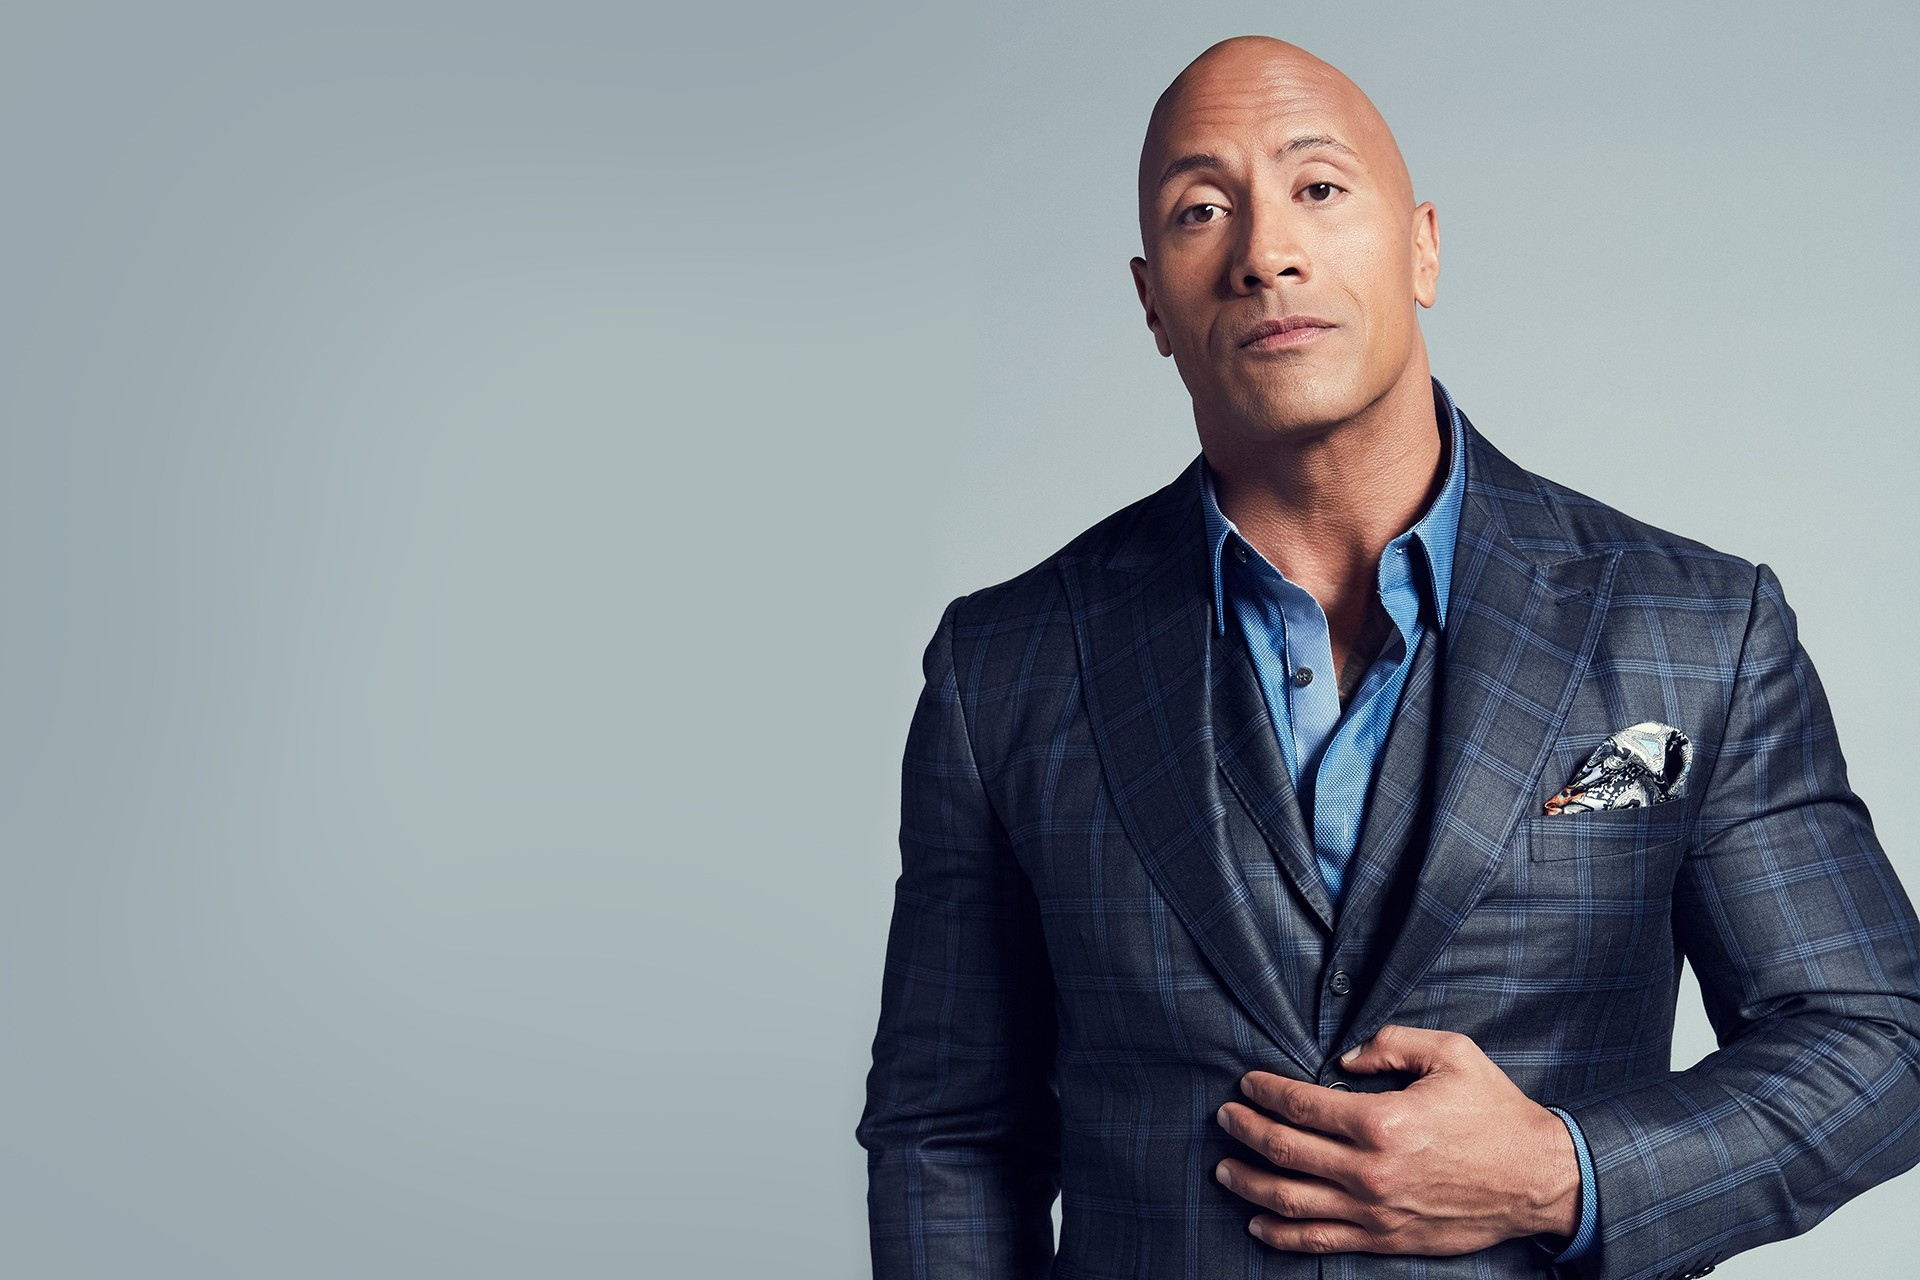 DWAYNE JOHNSON - Actor / World Heavyweight Champion